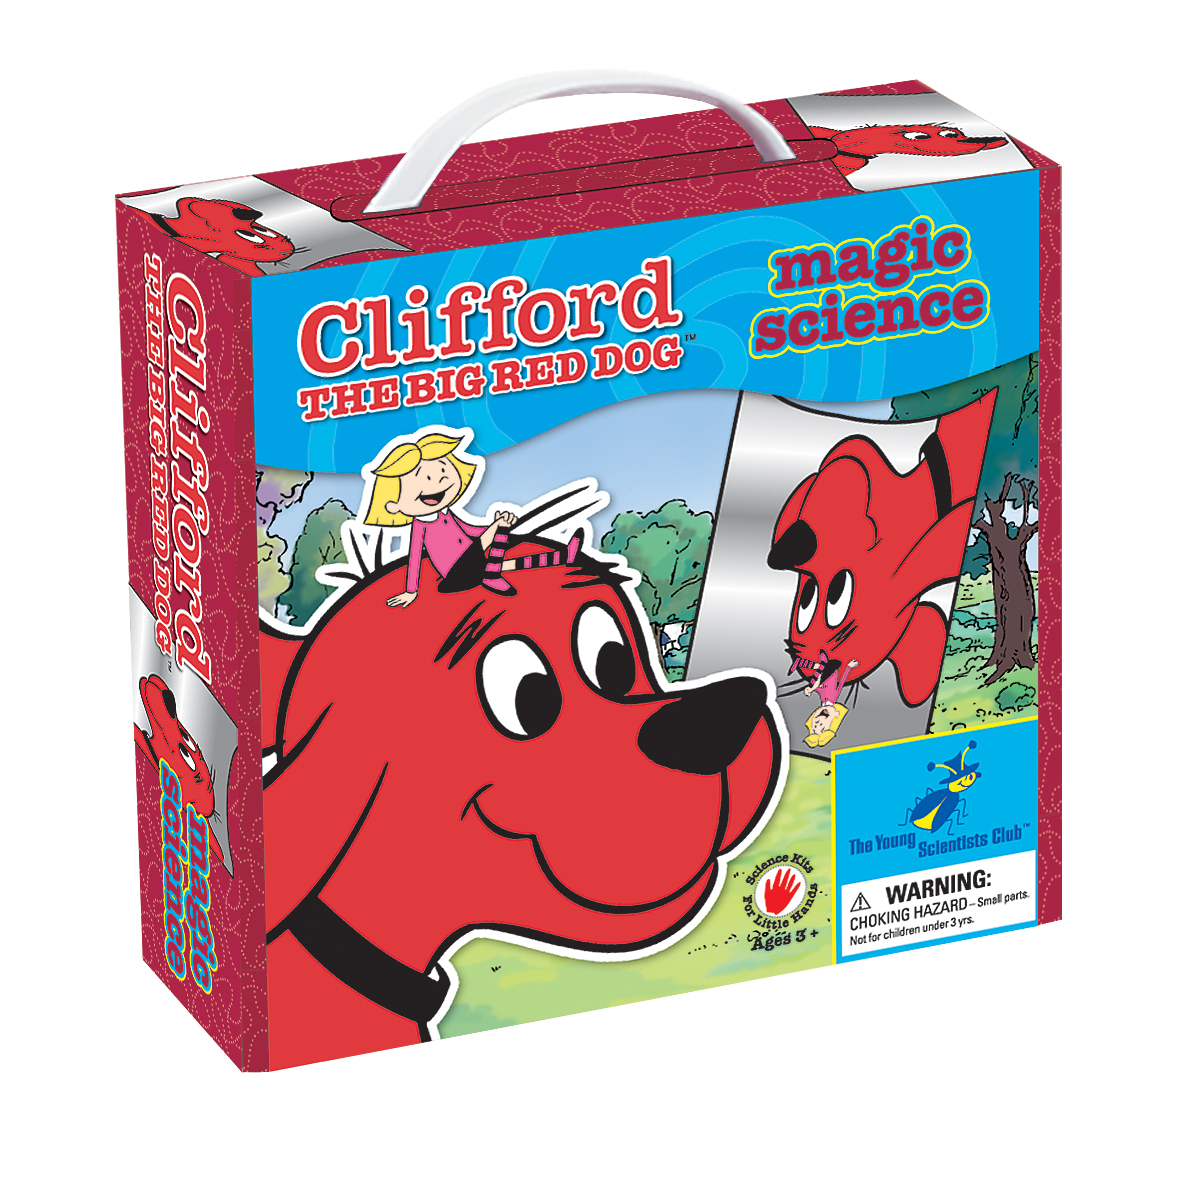 The Young Scientists Club Clifford The Big Red Dog Magic